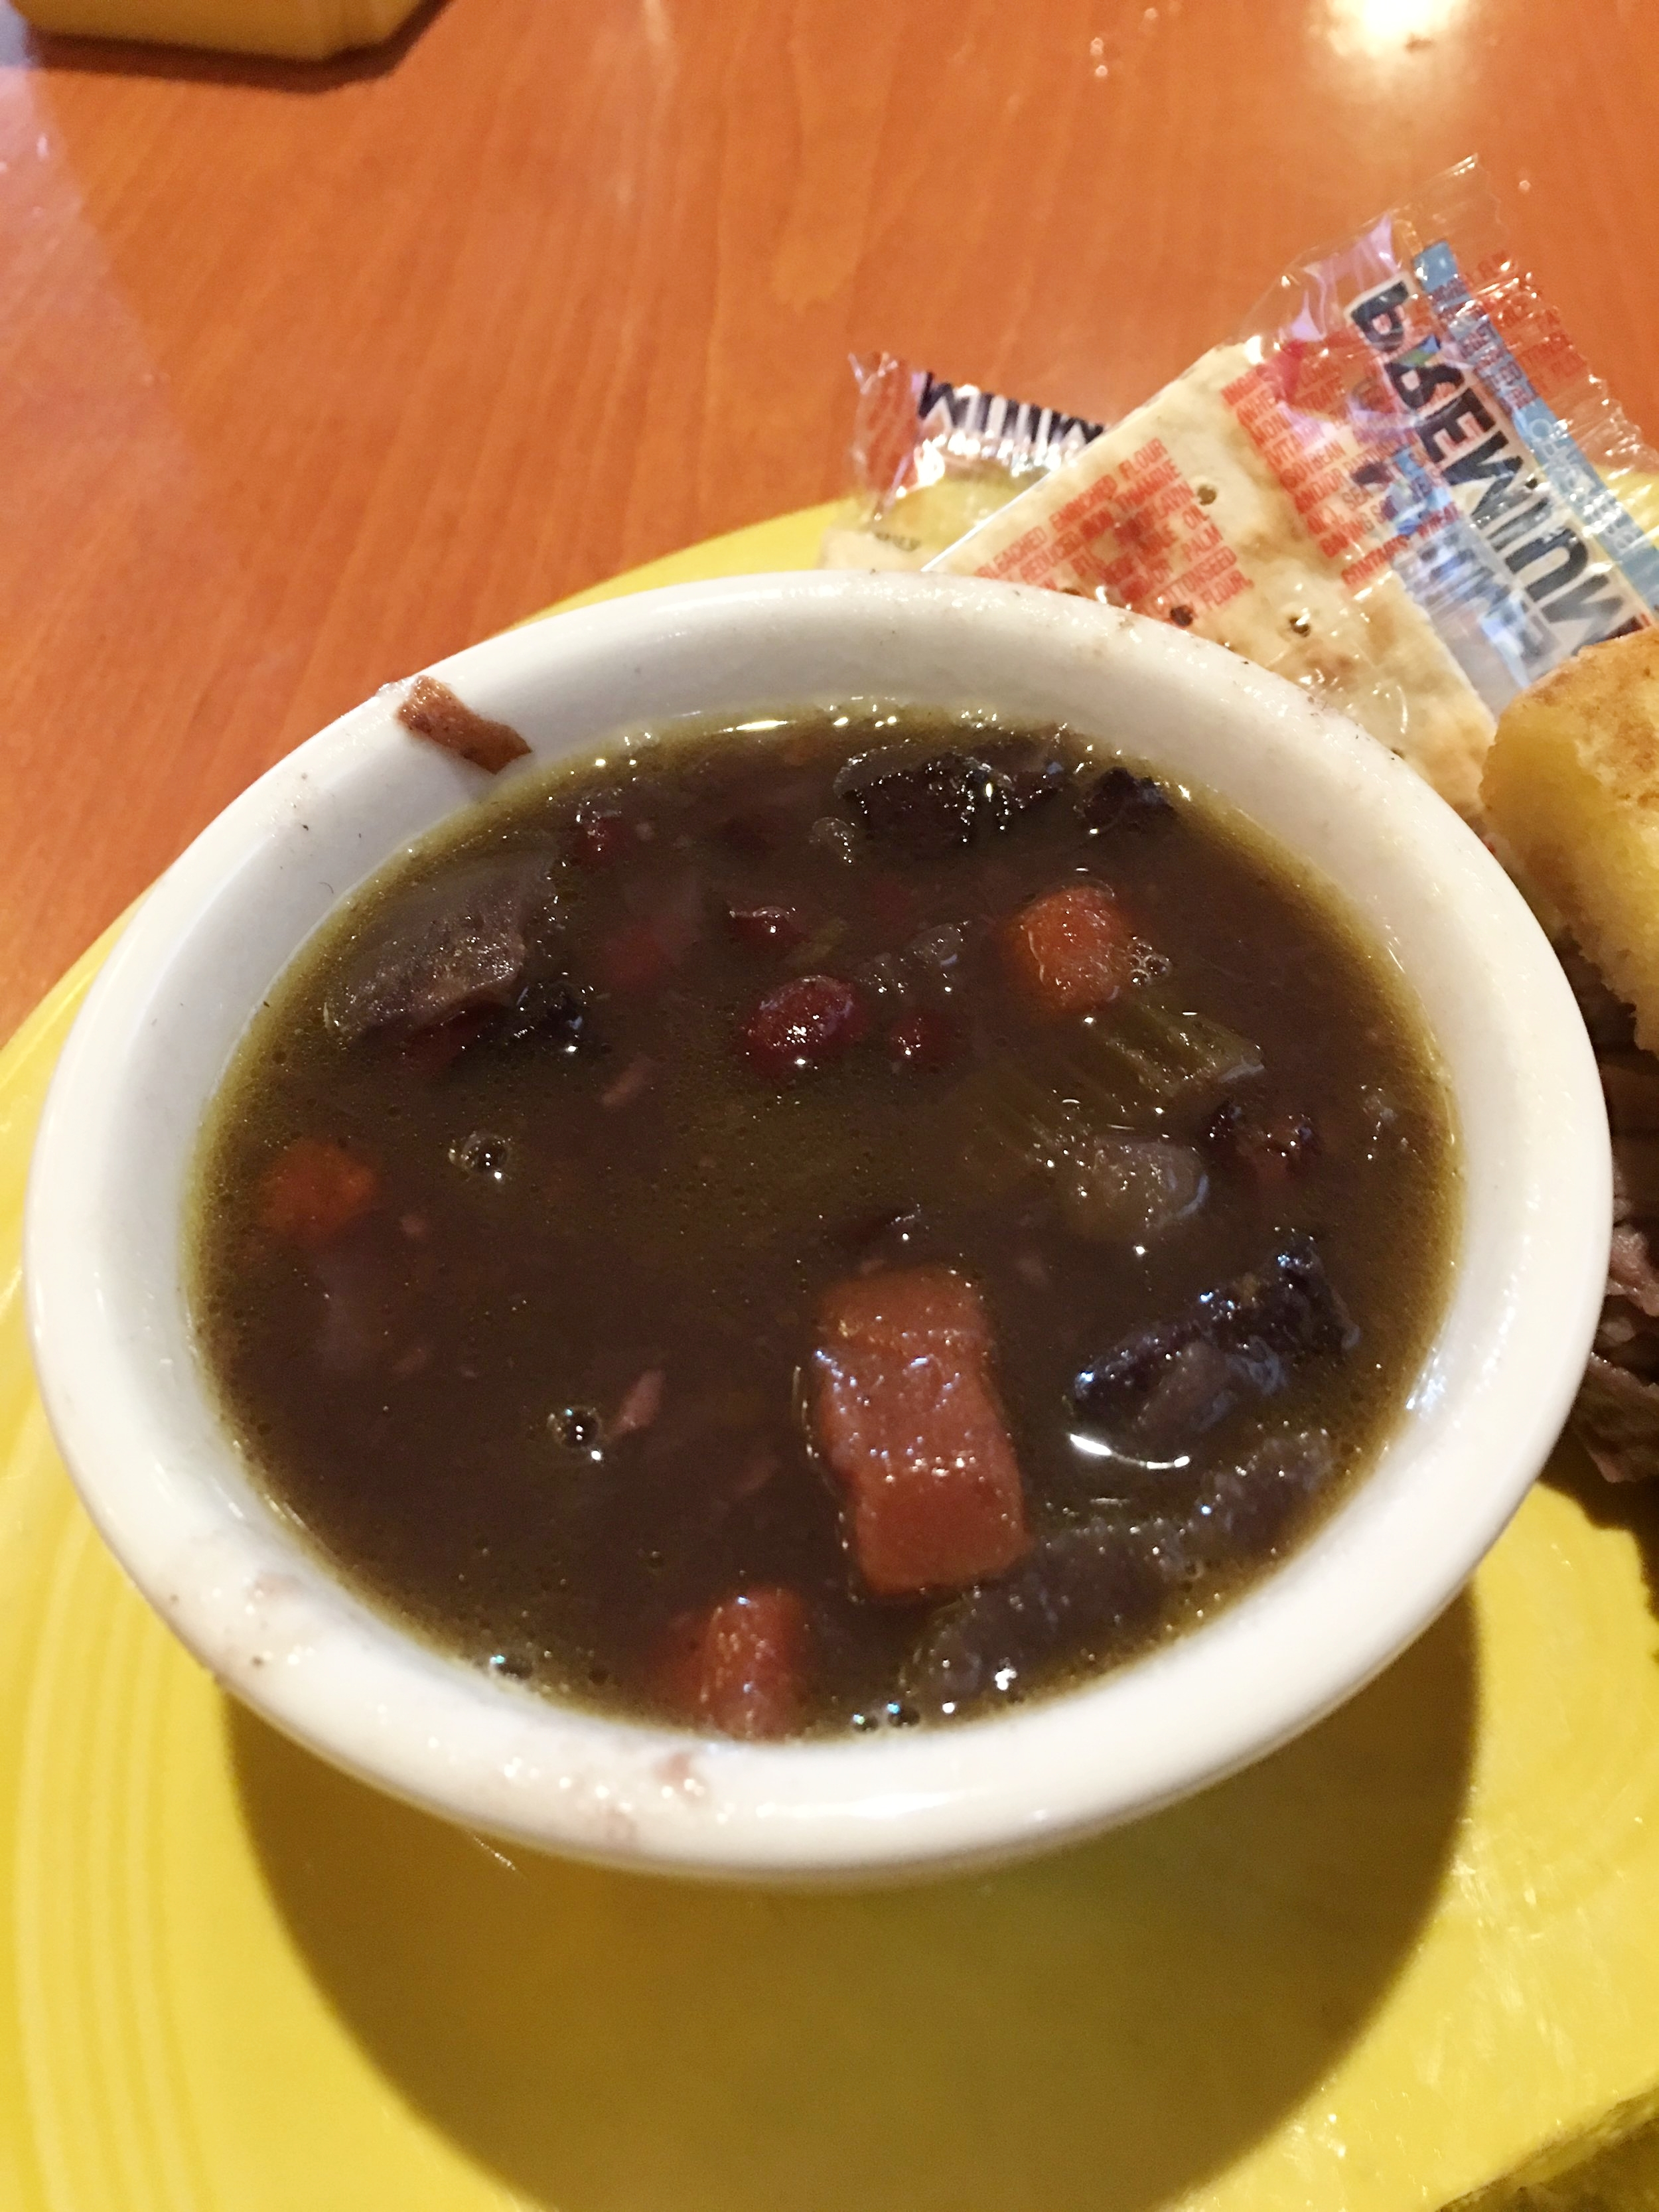 A little reindeer sausage and black bean soup for lunch